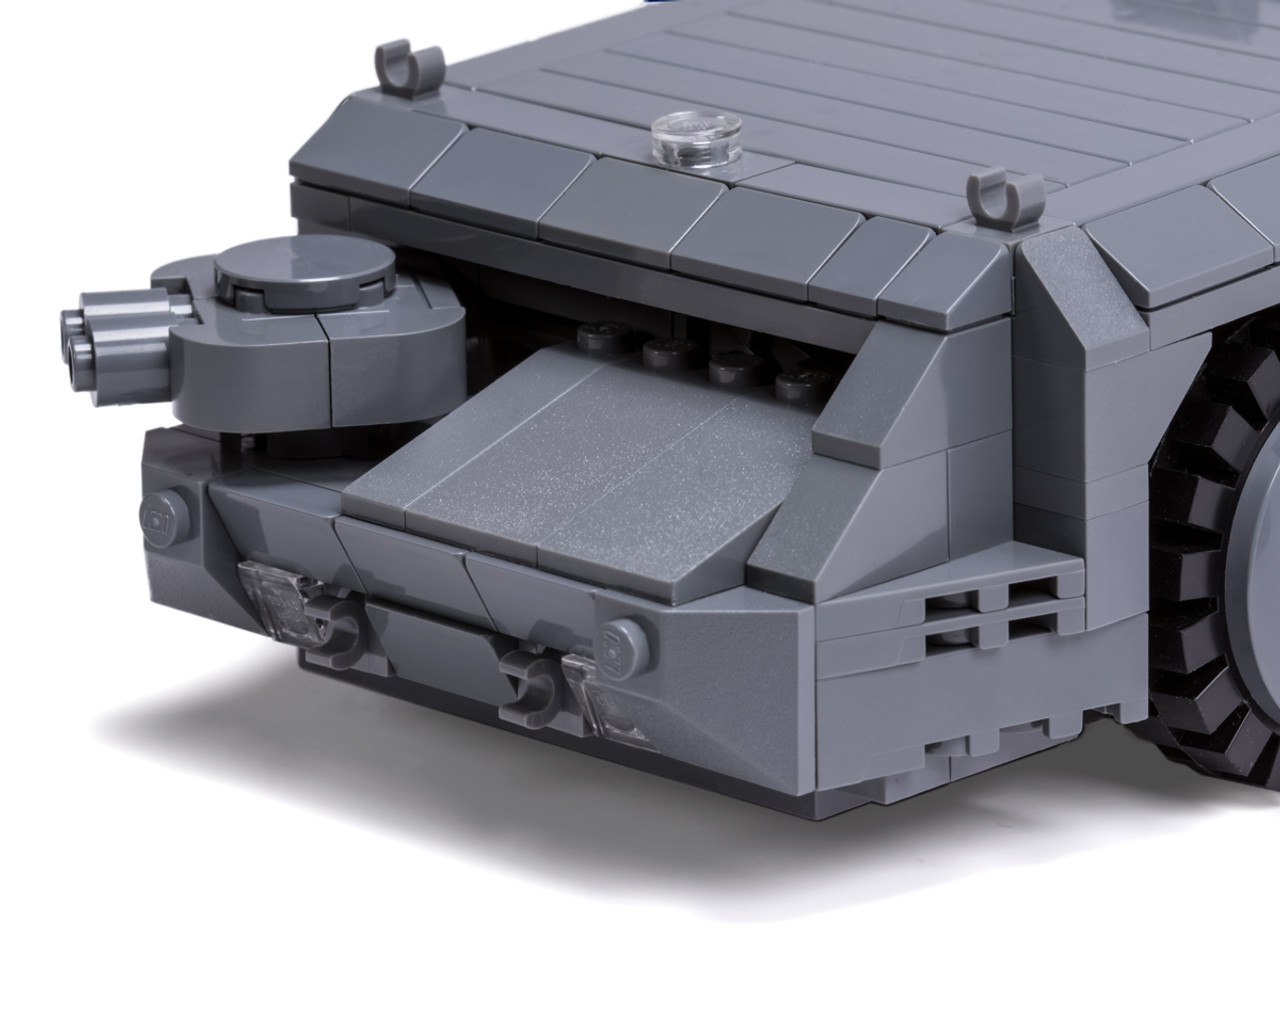 Offworld APC - M313 Armored Personnel Carrier